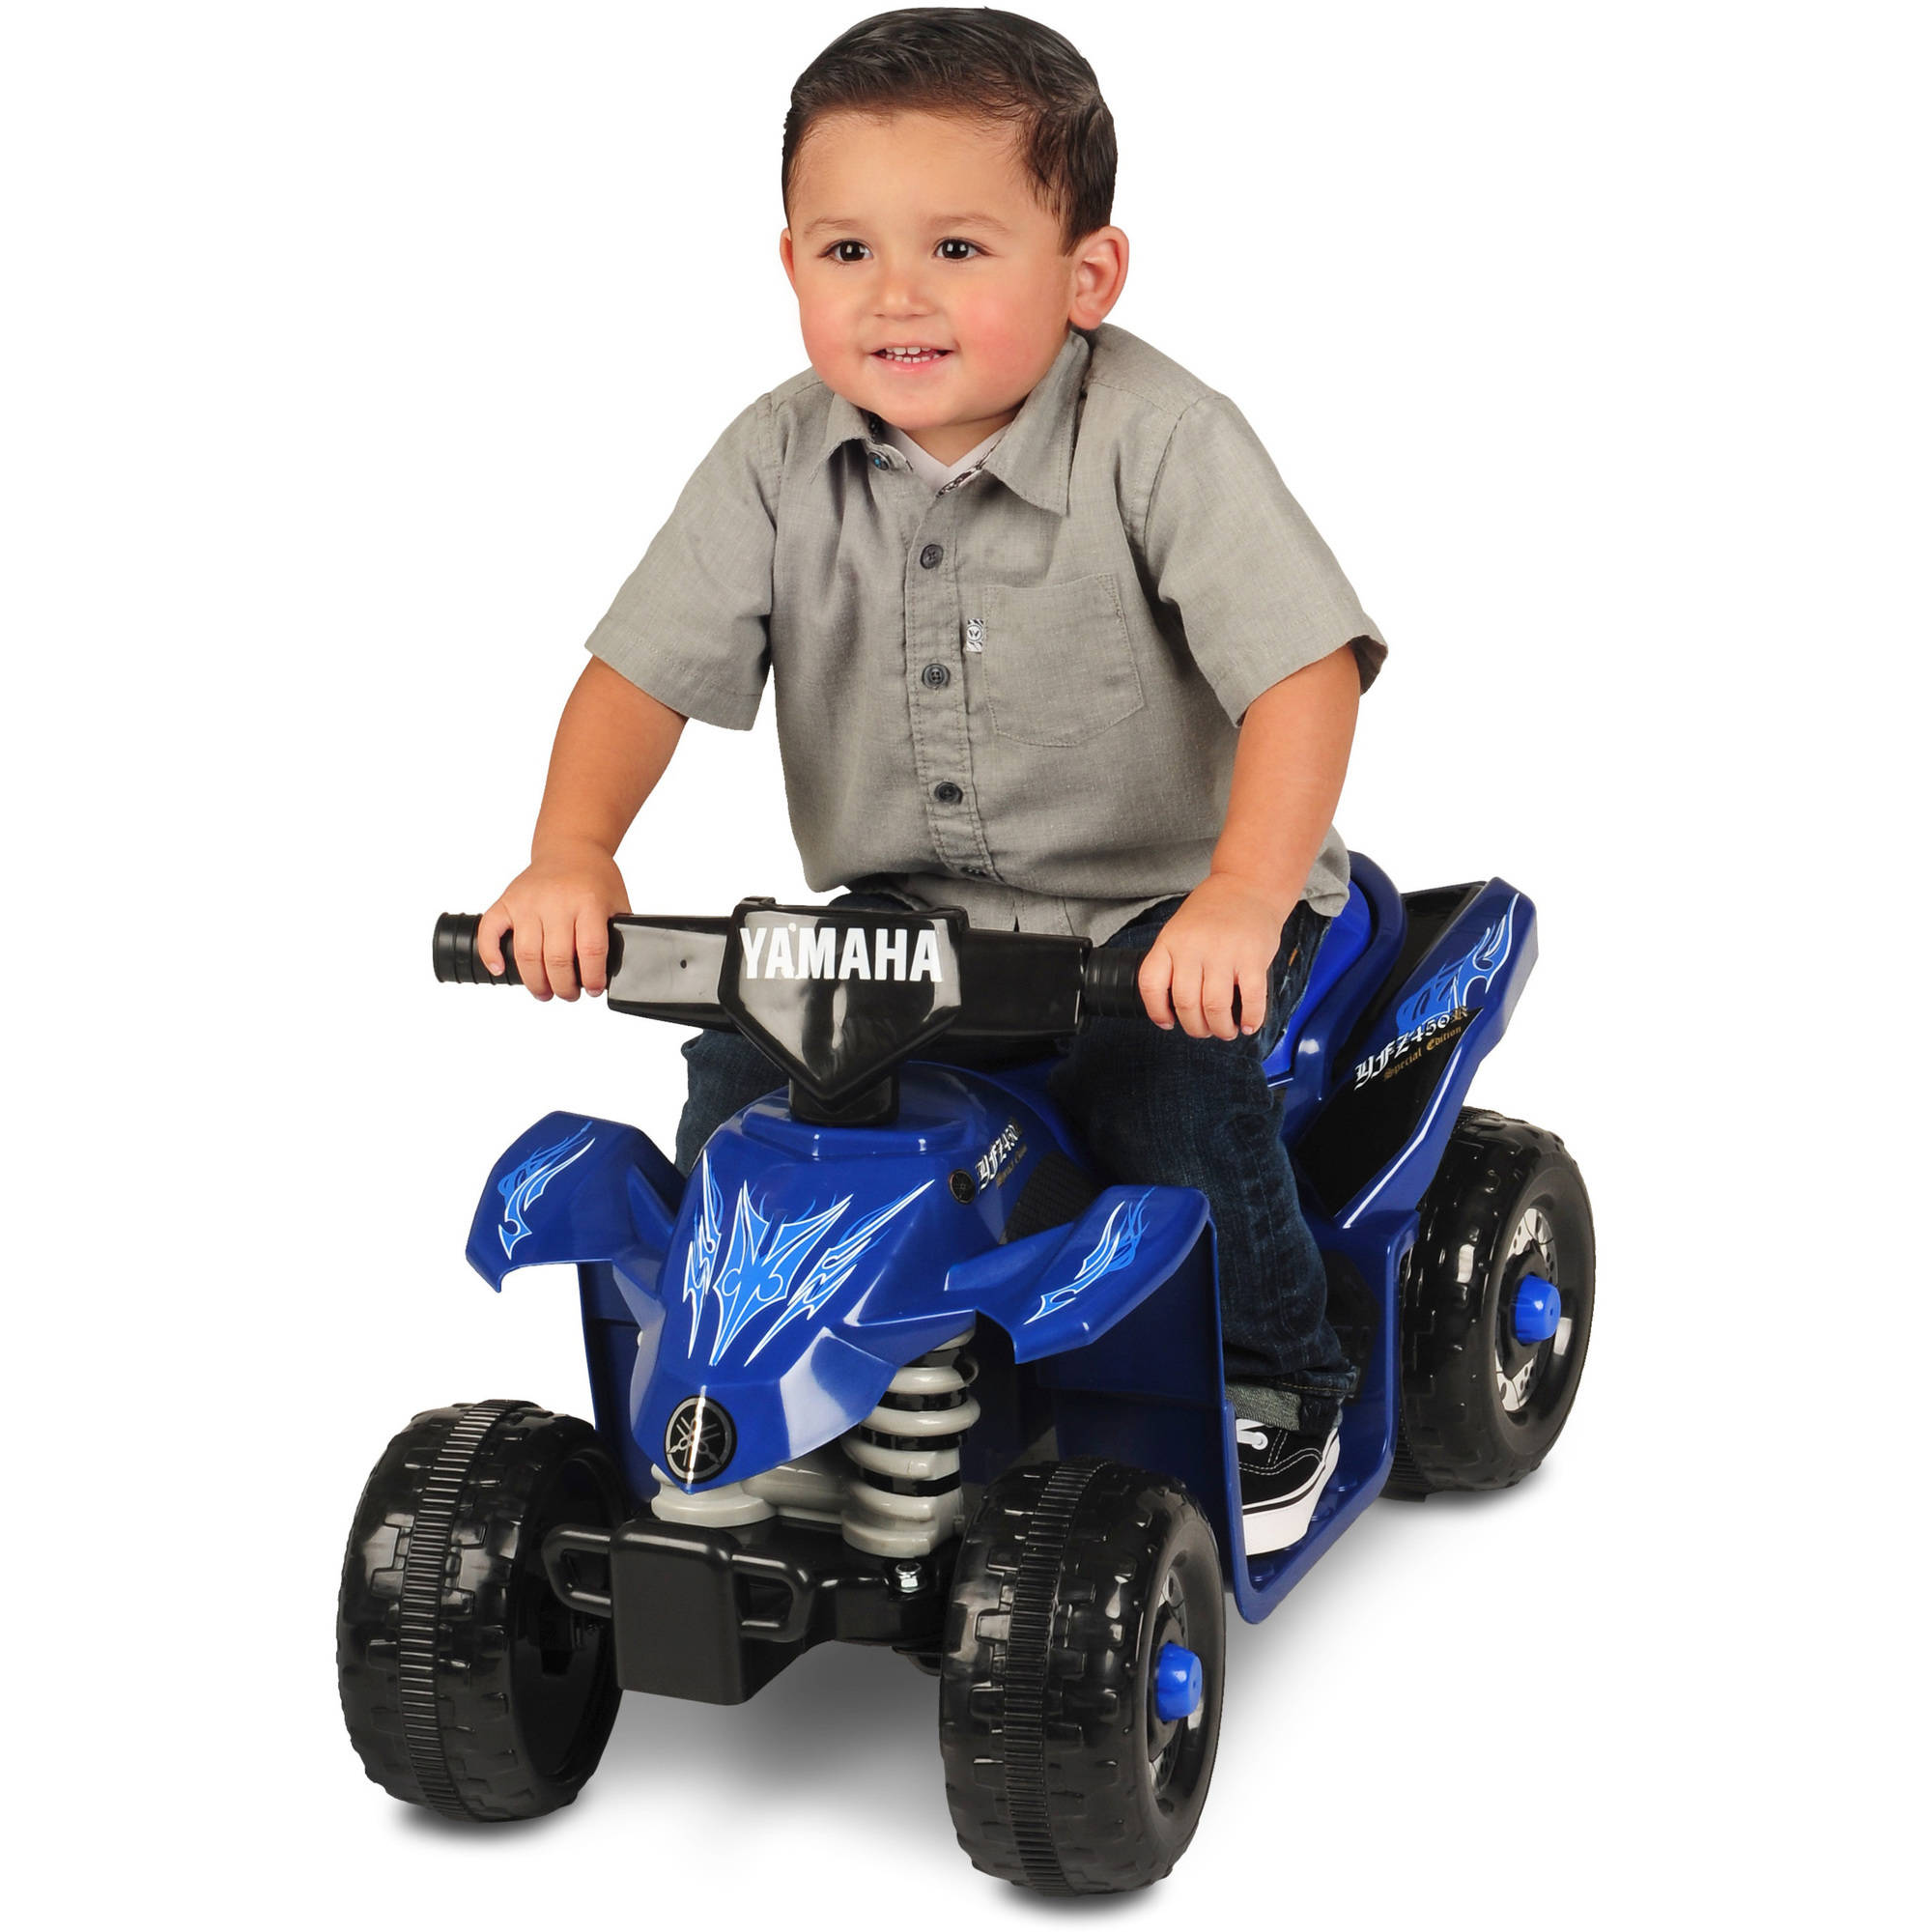 Kids ATV Ride Toy 4 Wheeler 6 Volt Battery Powered for Children